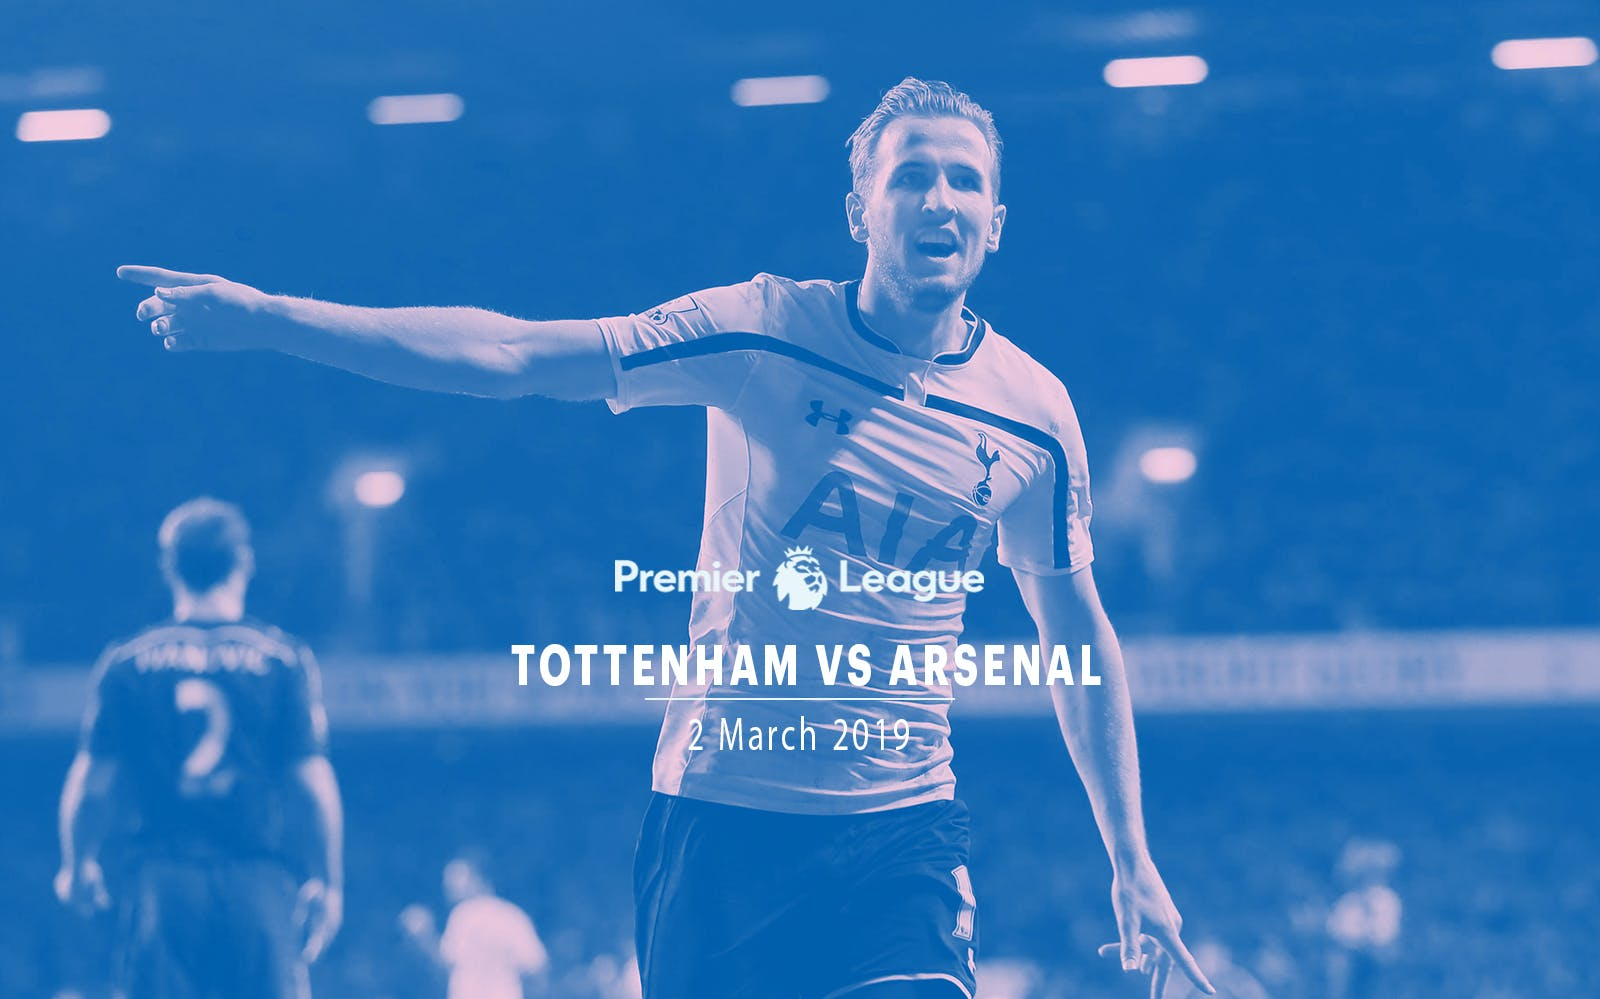 tottenham vs arsenal - 2nd mar'19-1